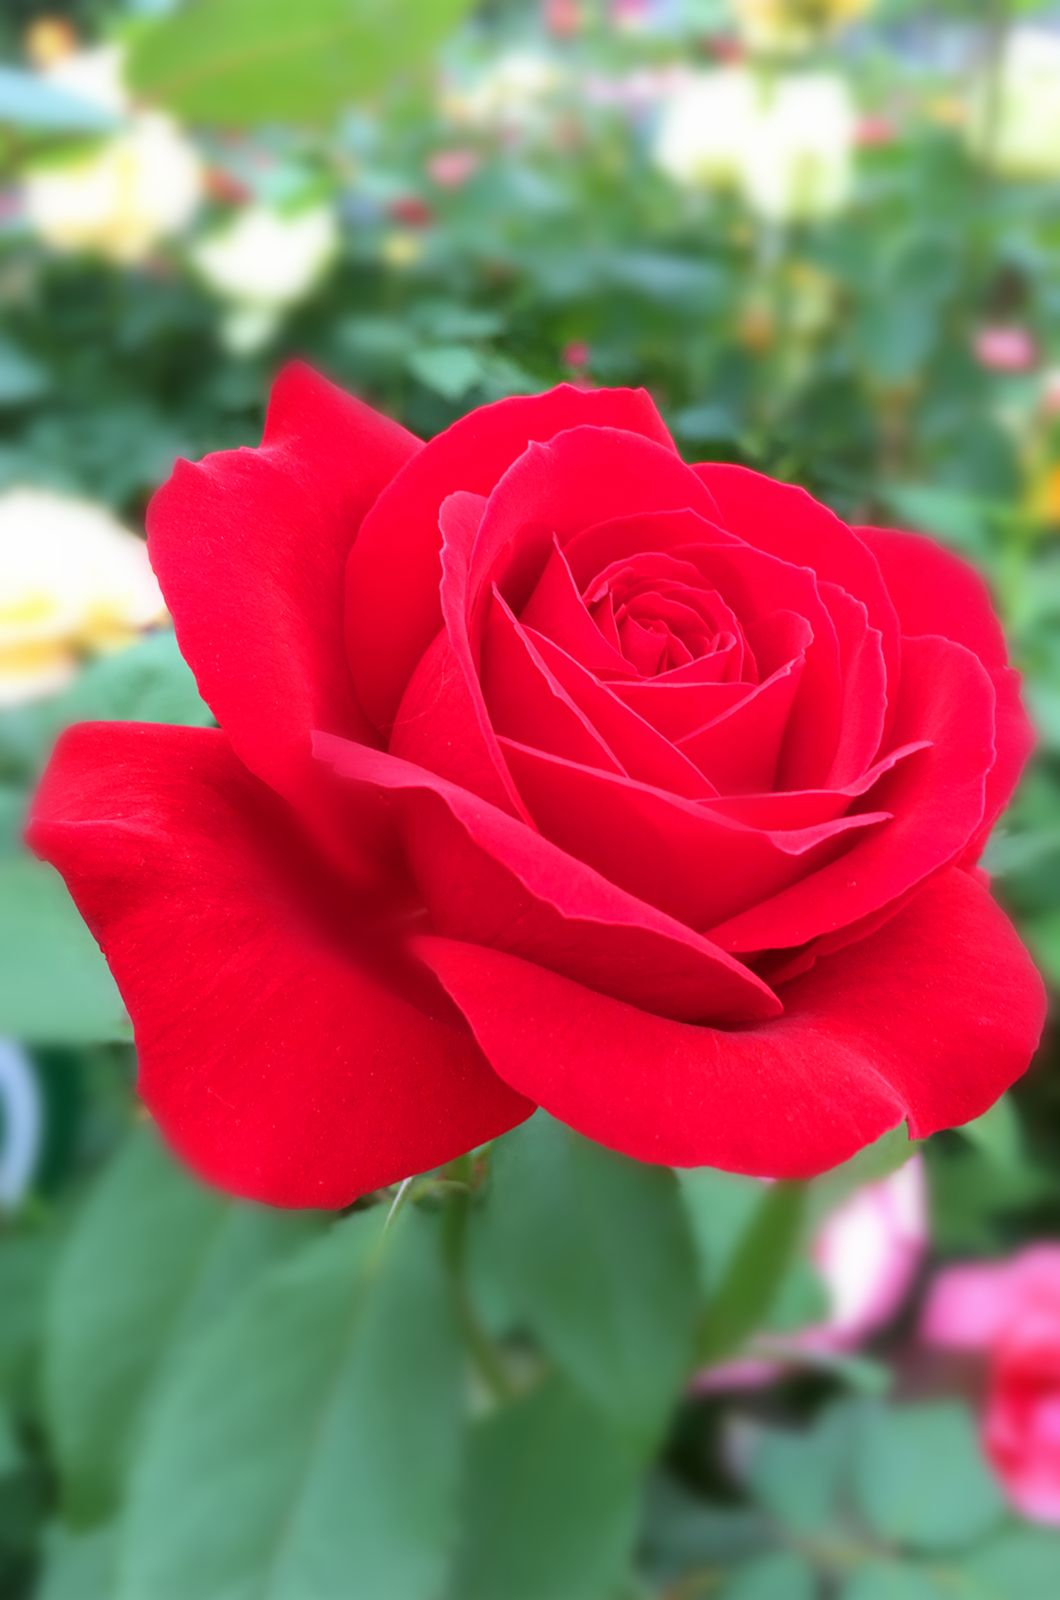 Red rose in full bloom, I love this. Red roses